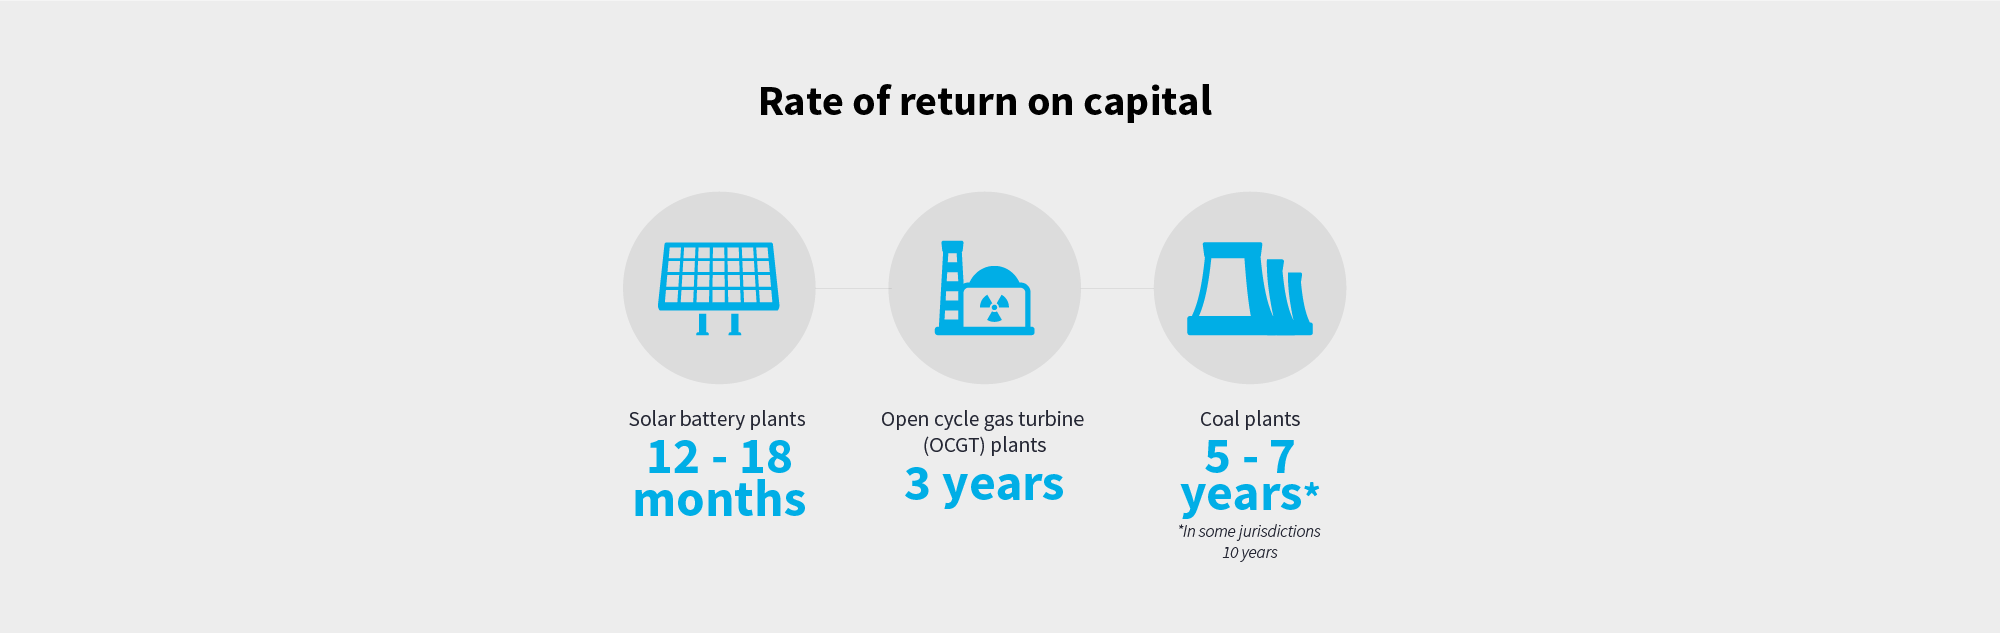 Rate of return on capital